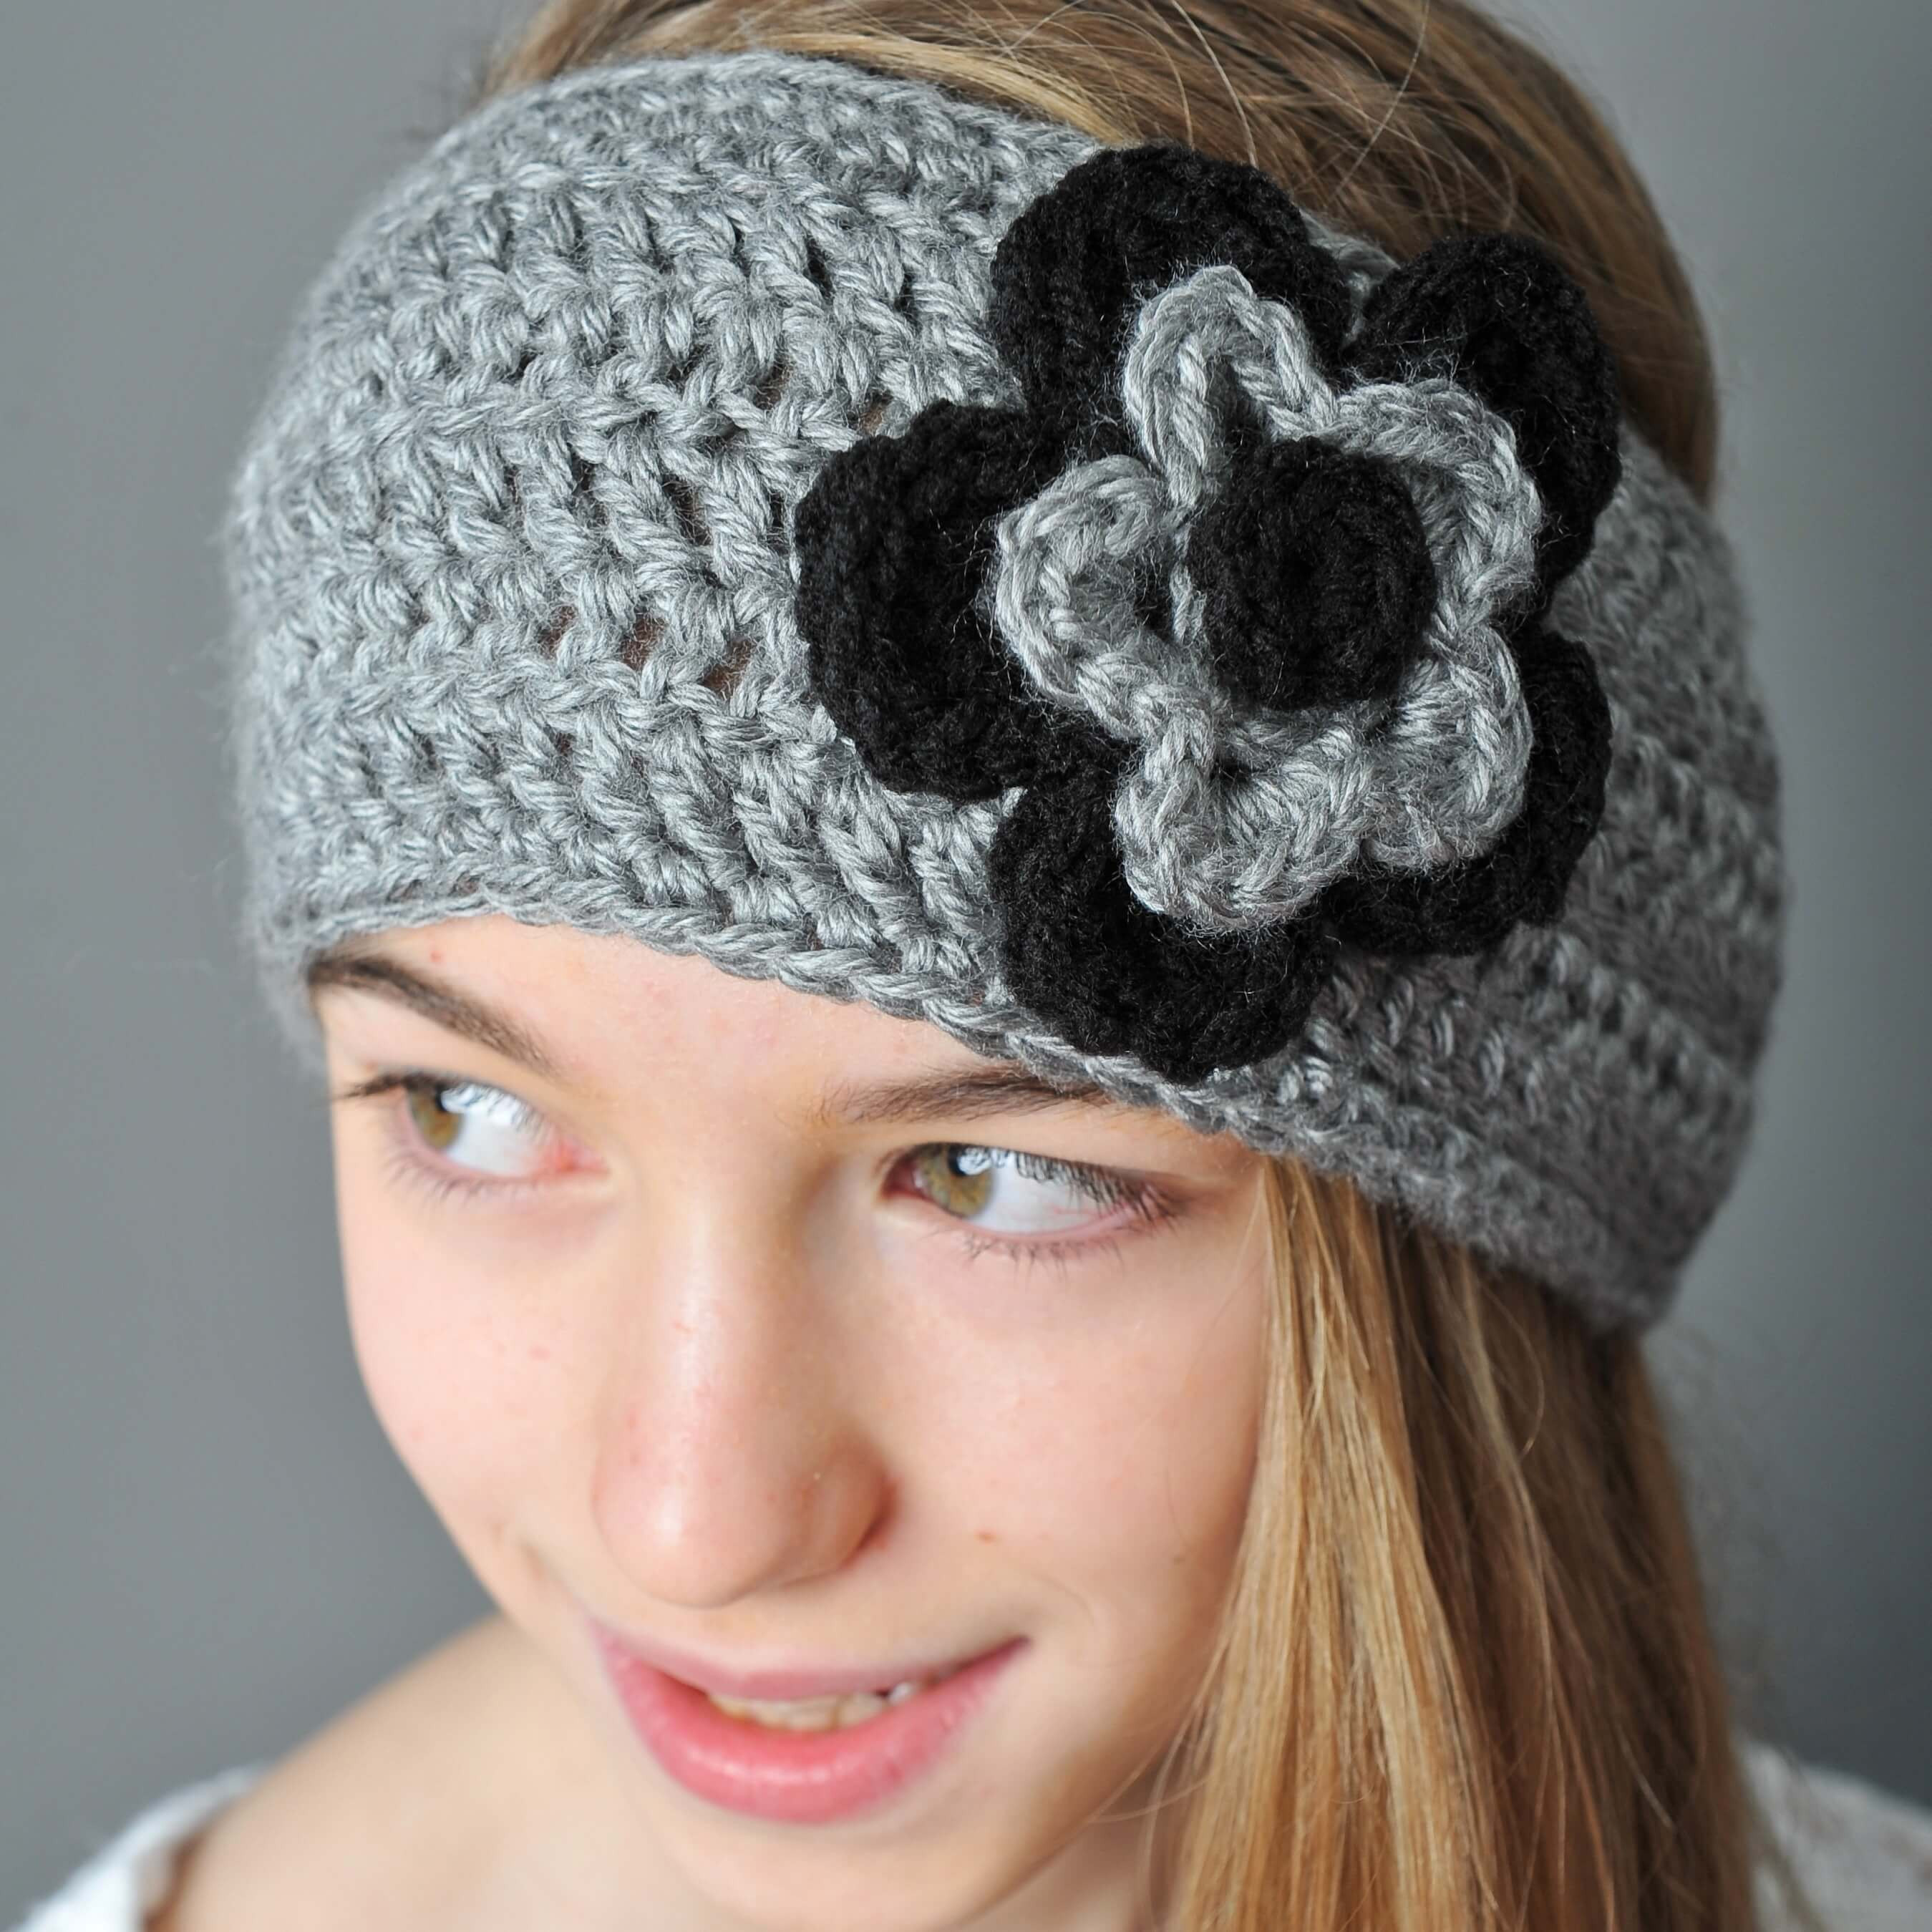 Crochet Ear Warmer Beautiful Crochet Ear Warmer with Layered Flowers Petals to Picots Of Awesome 46 Pictures Crochet Ear Warmer